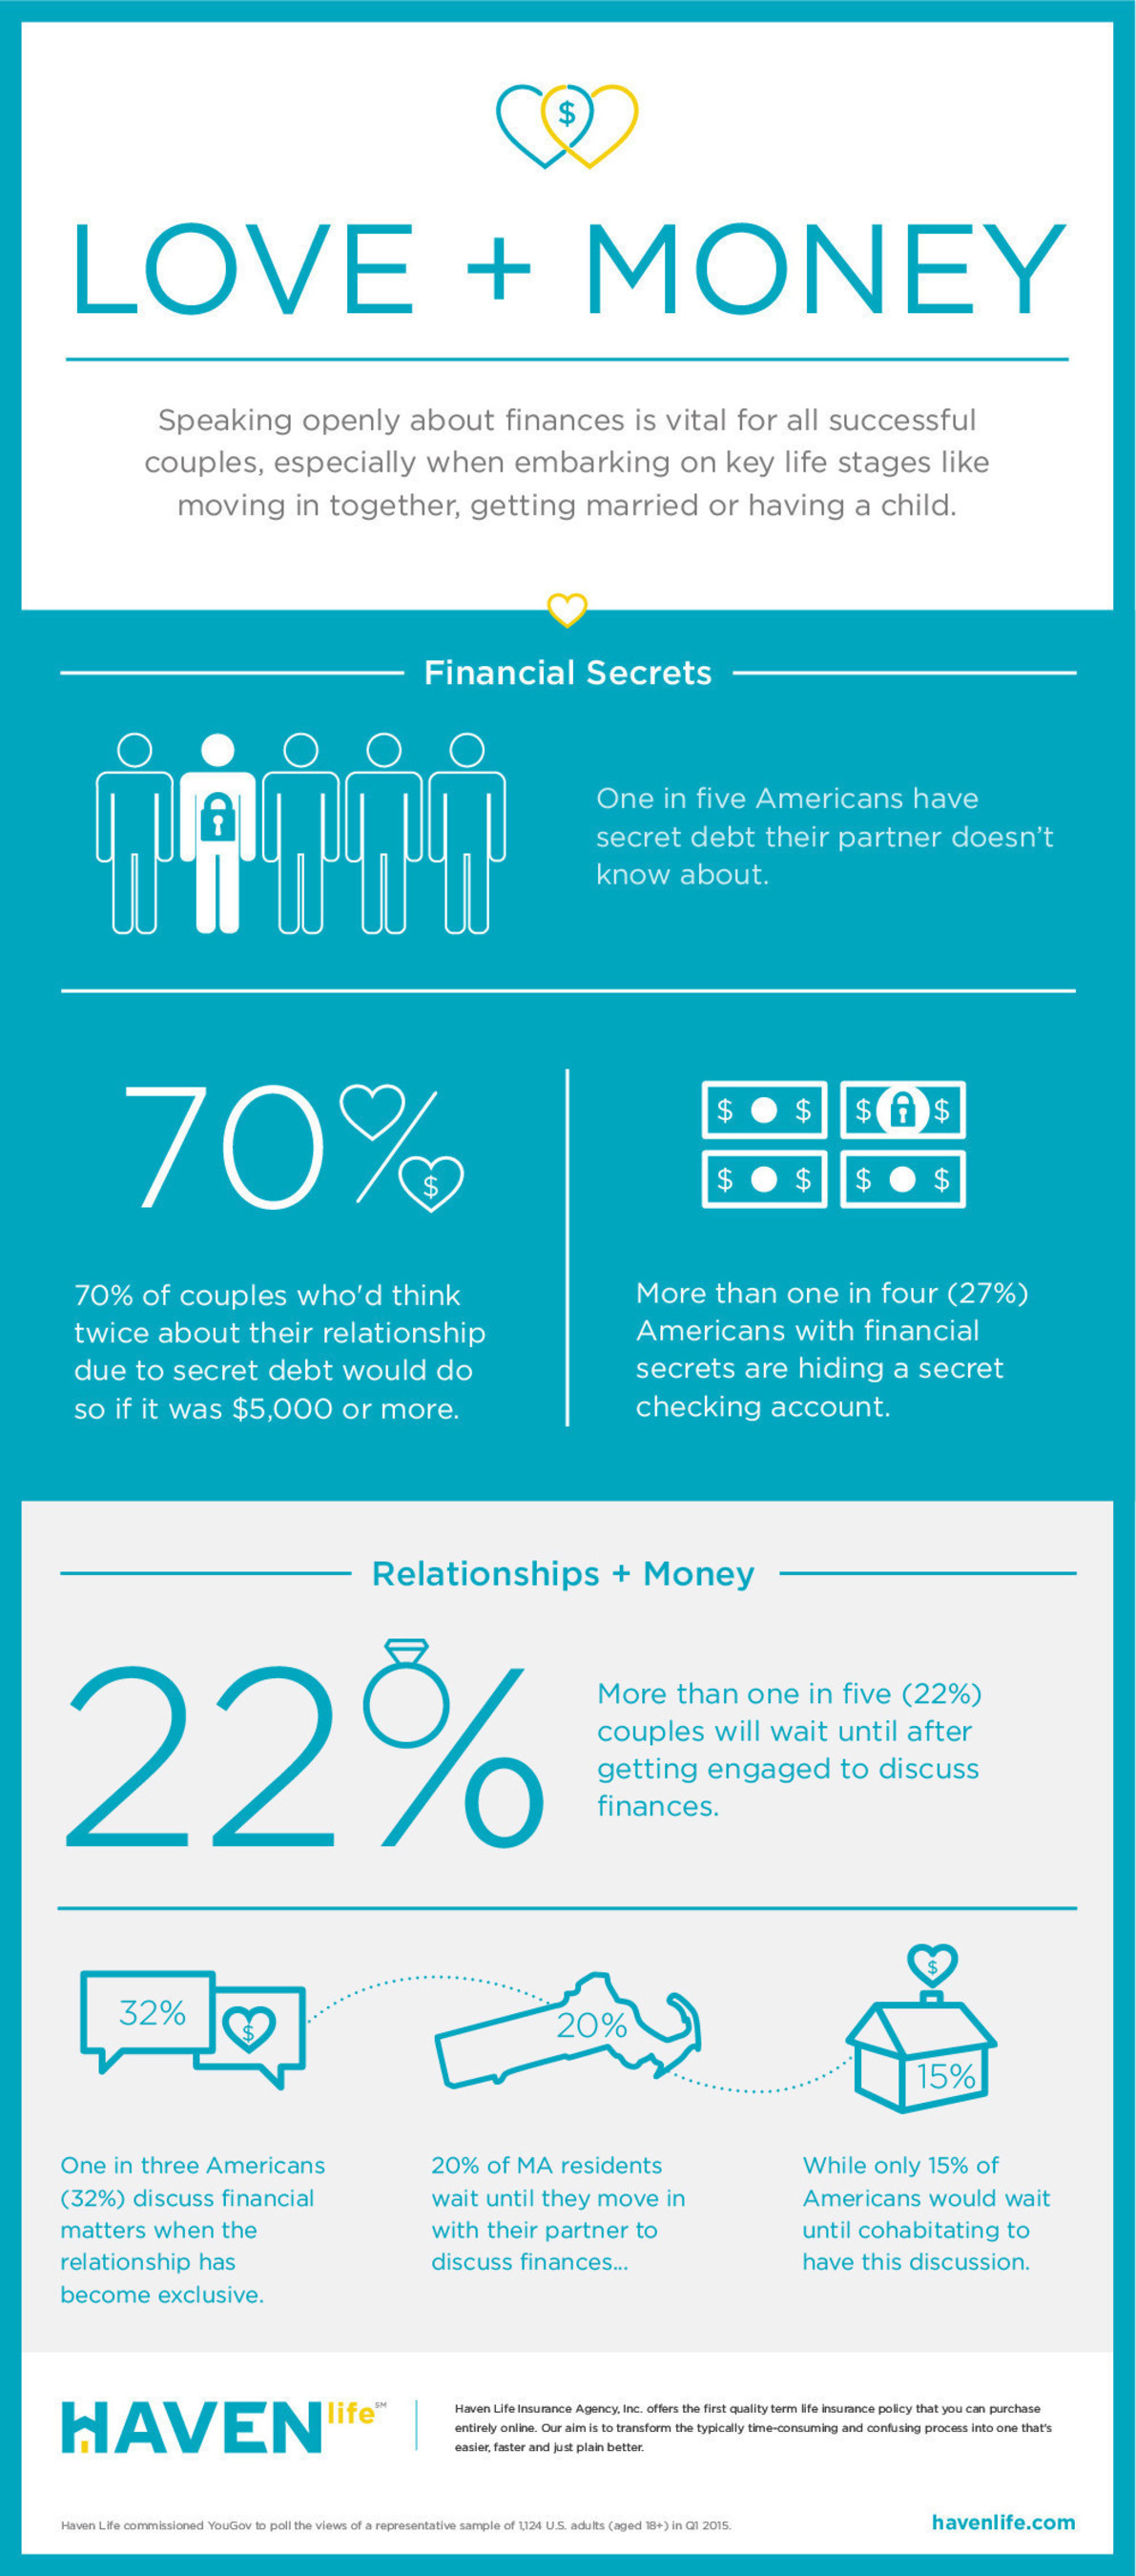 Haven Life conducted original research to determine how comfortable couples are with talking about money.